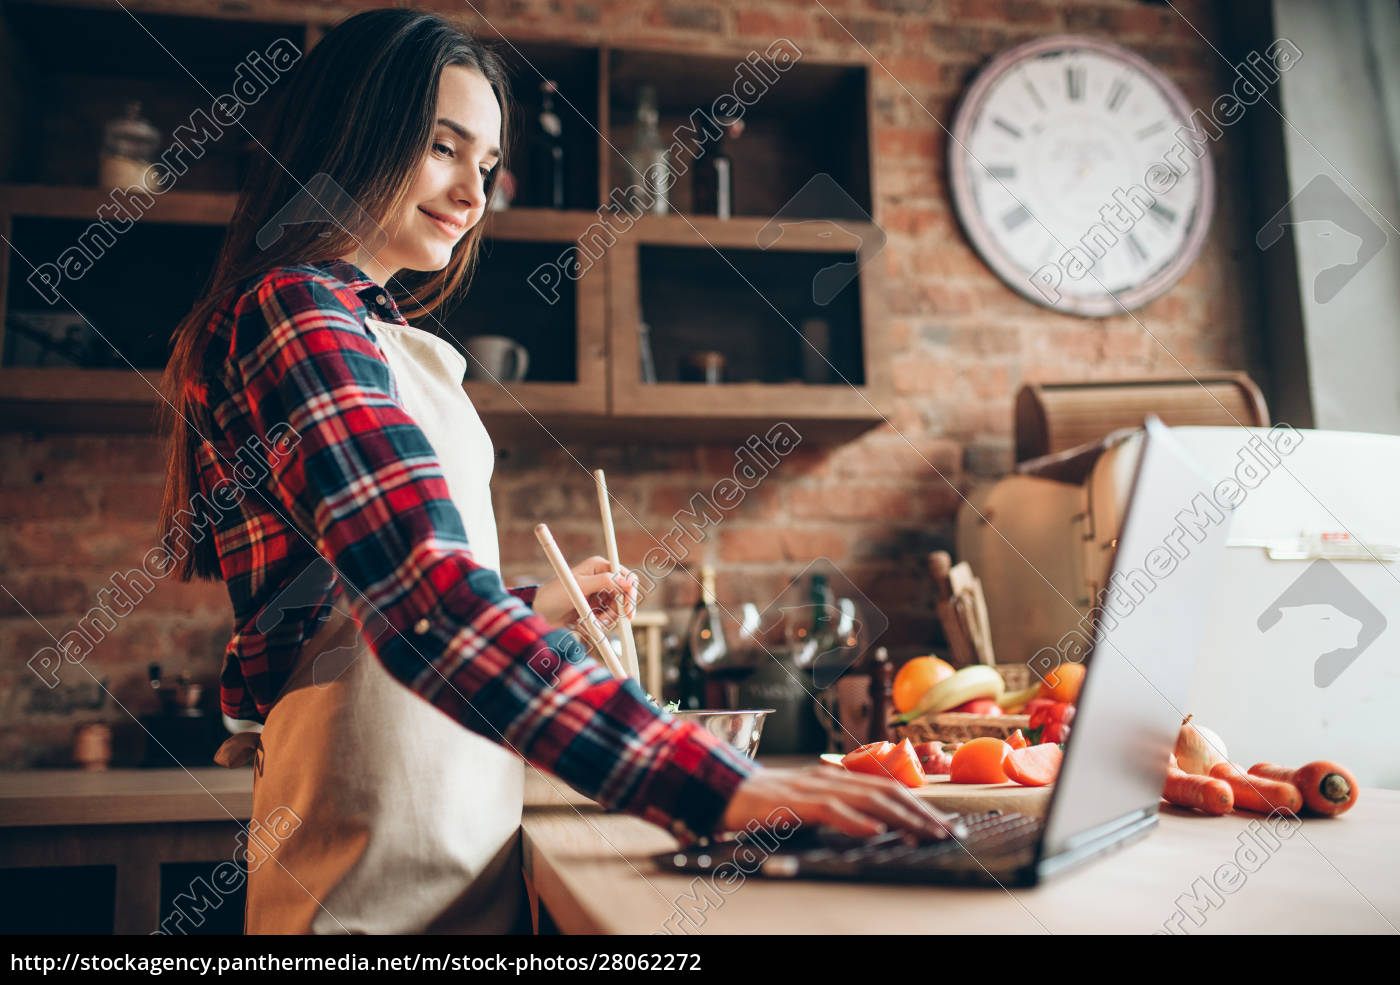 female, cook, in, apron, looks, at - 28062272